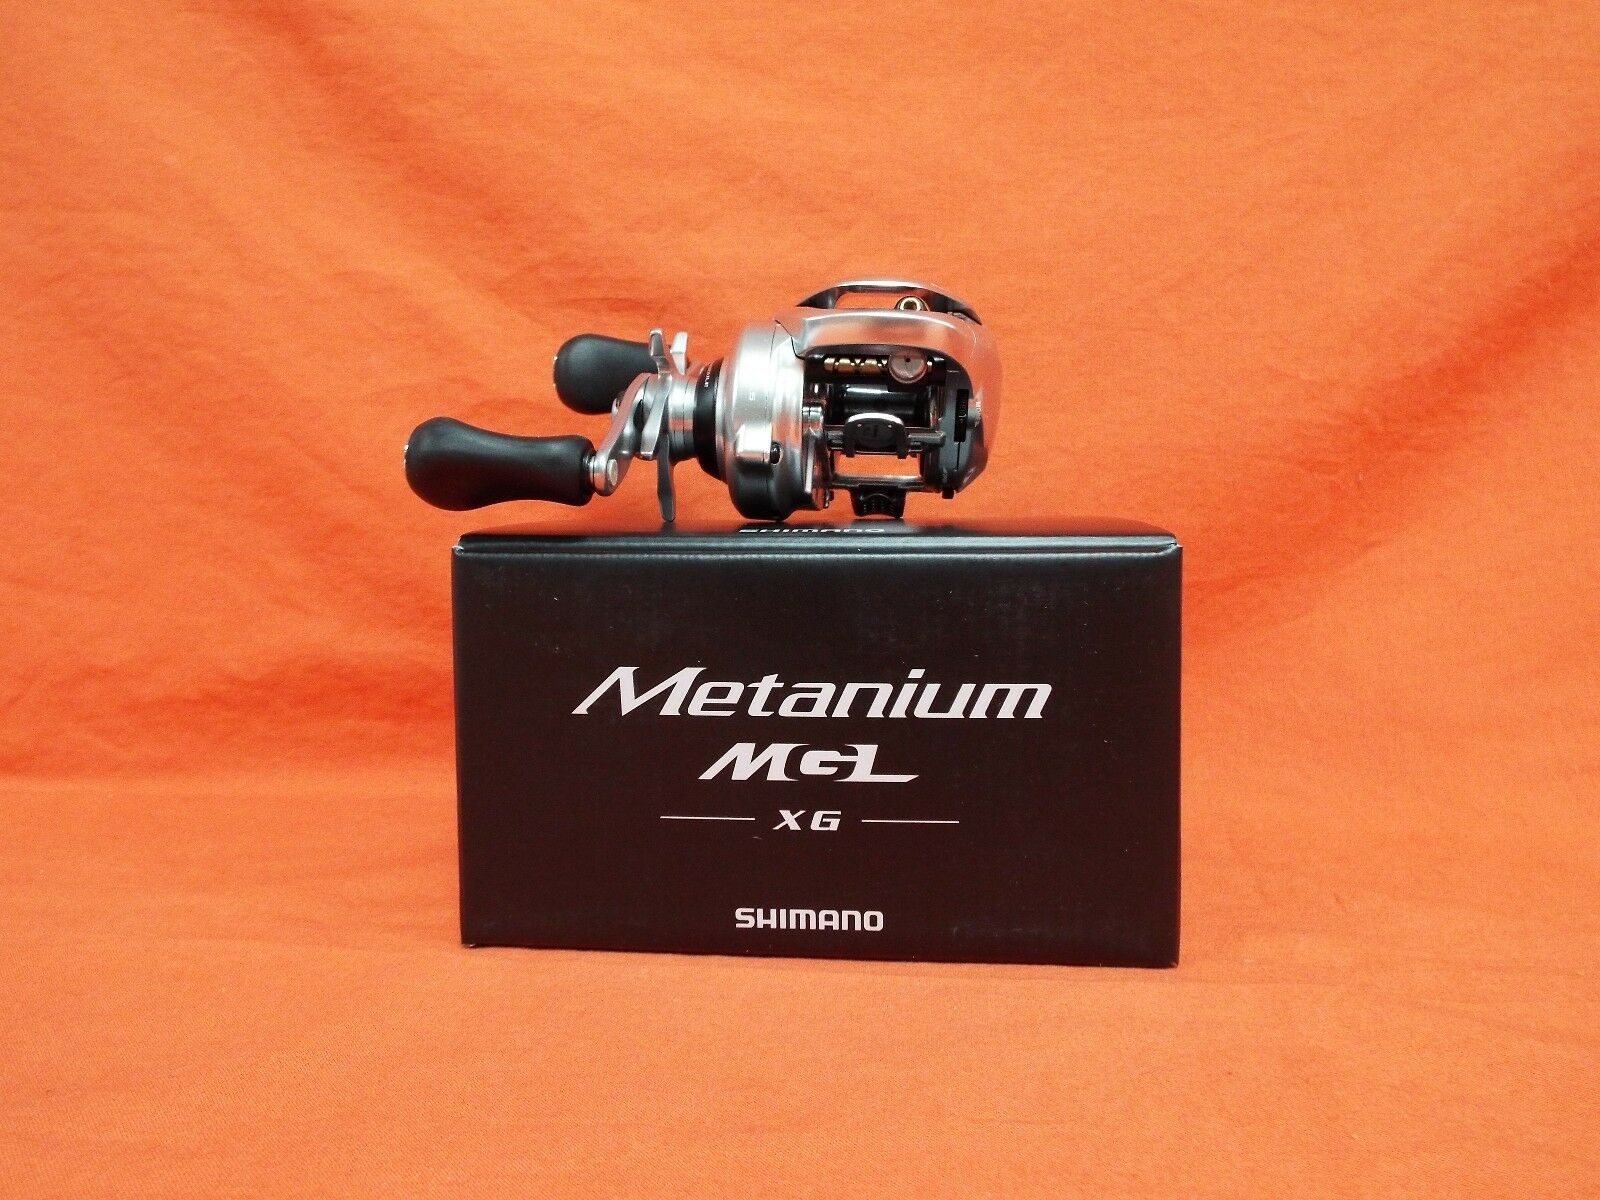 SHIMANO Metanium MGL XG Low Profile Baitcast Reel 8.5 1 Ratio